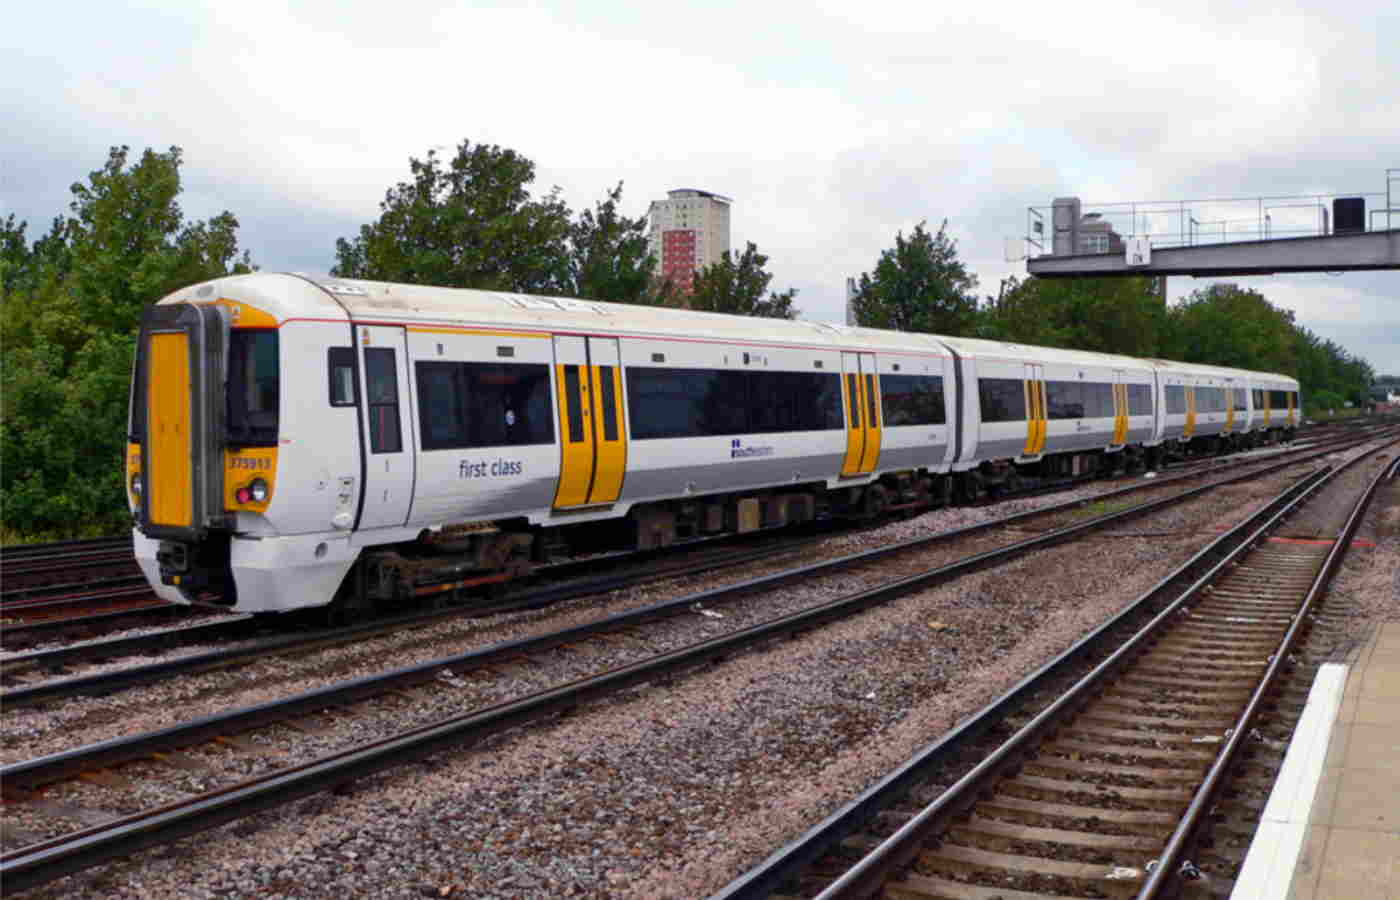 Our Railways are Key If We Want a Greener Bromley